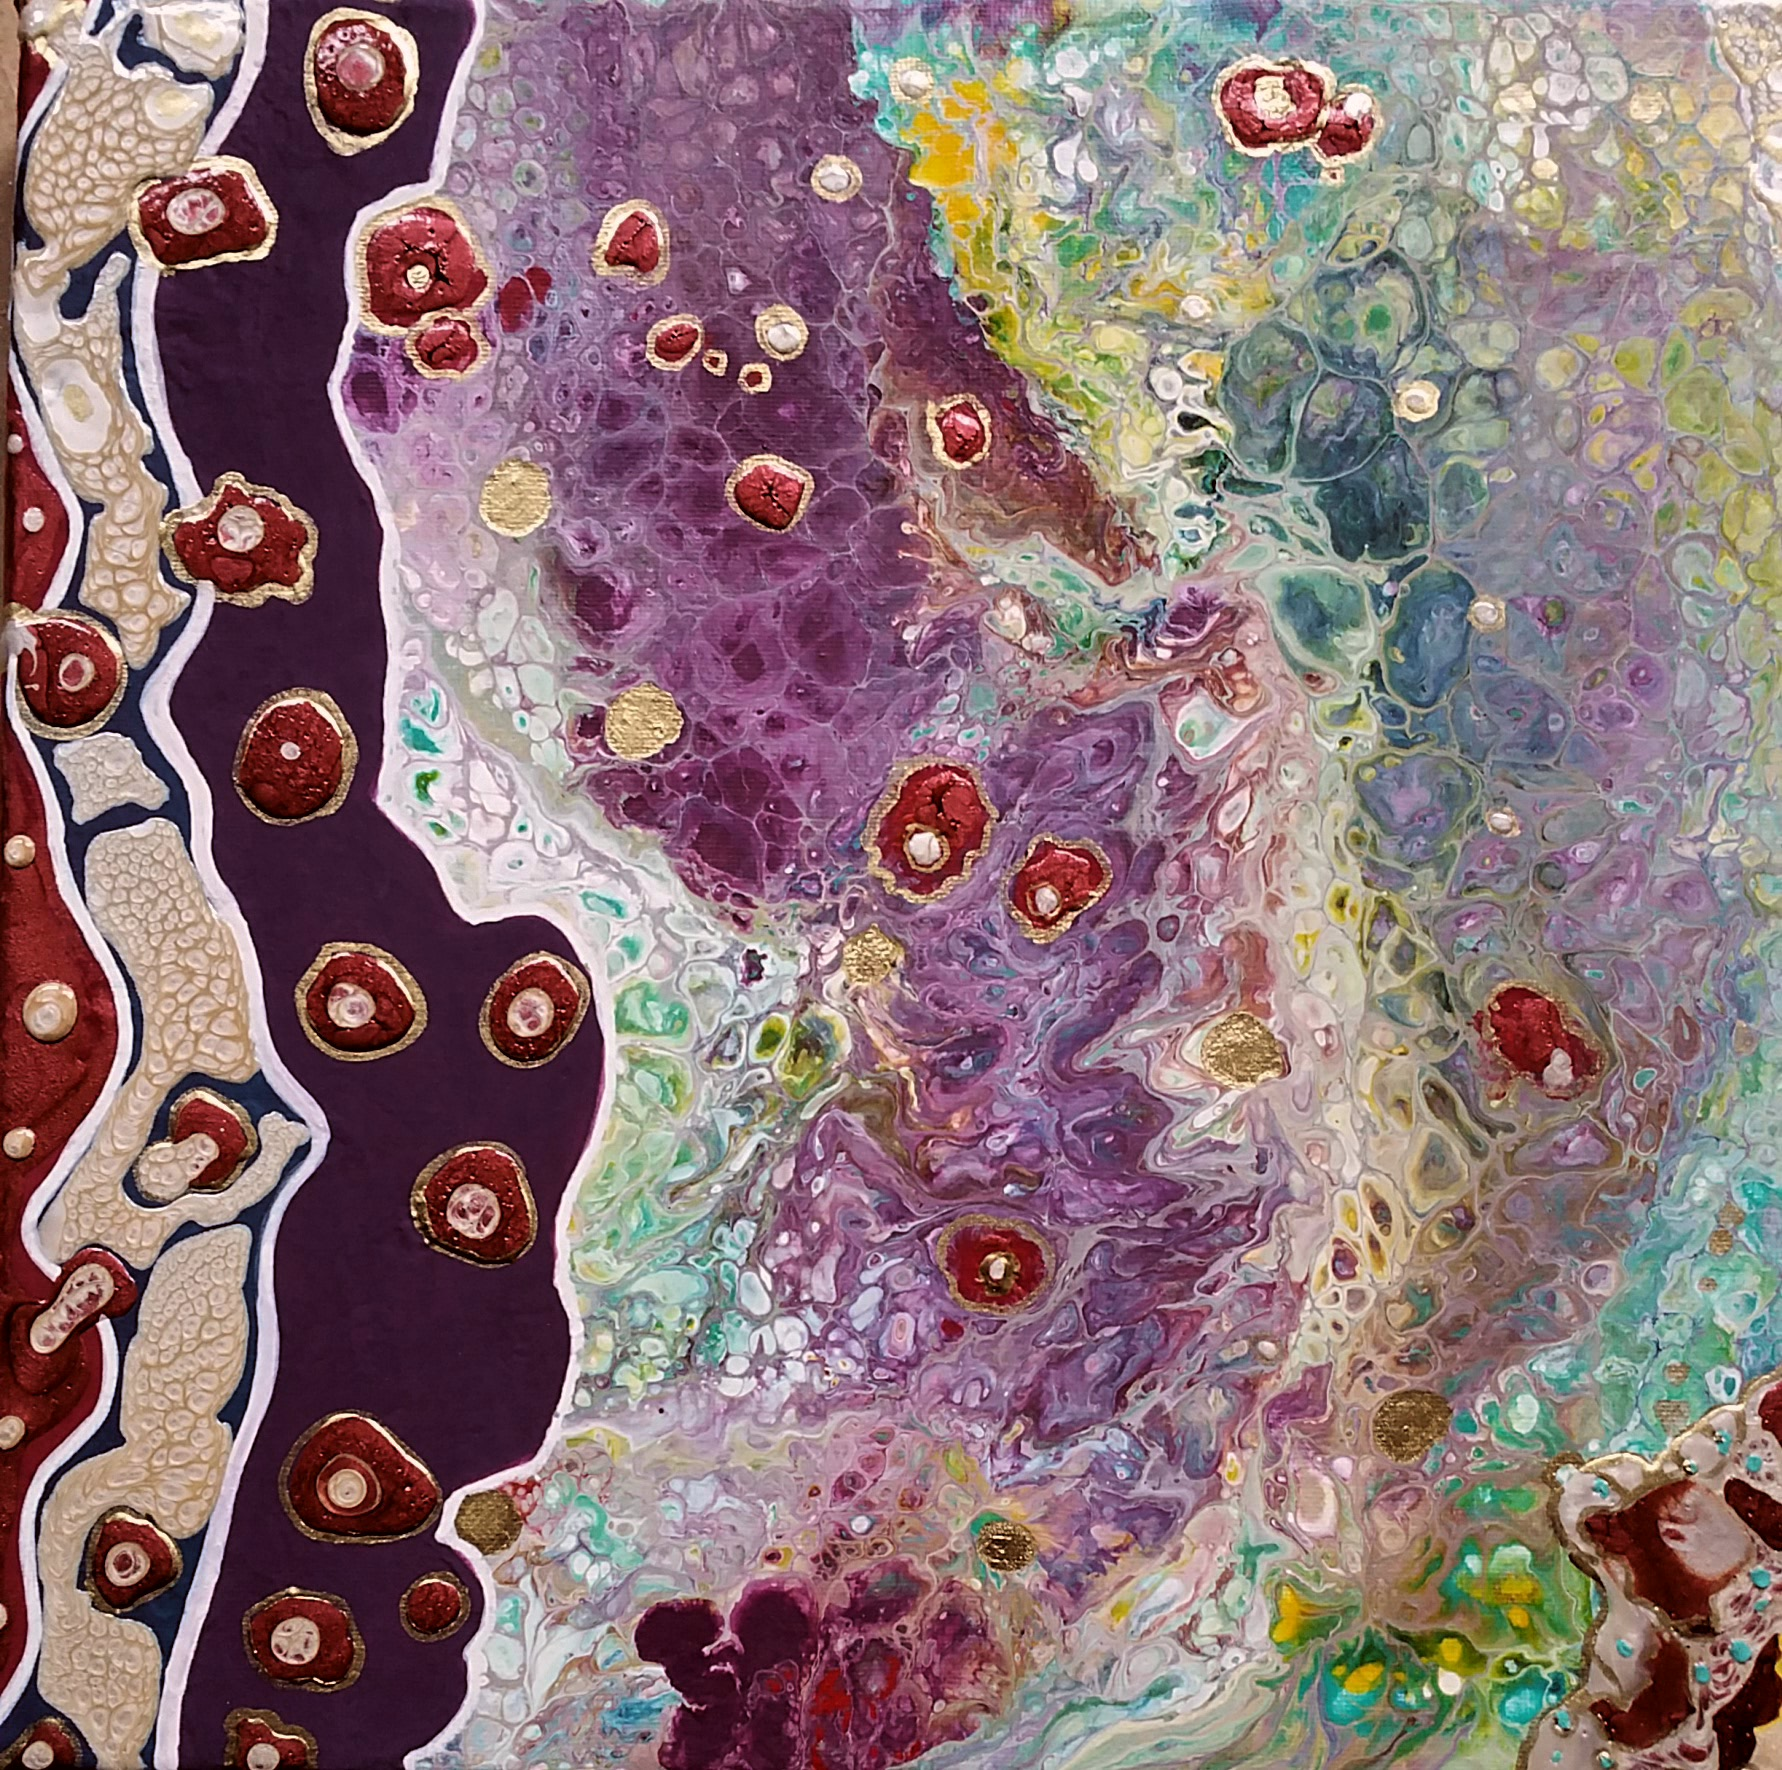 Mixed media and Pour